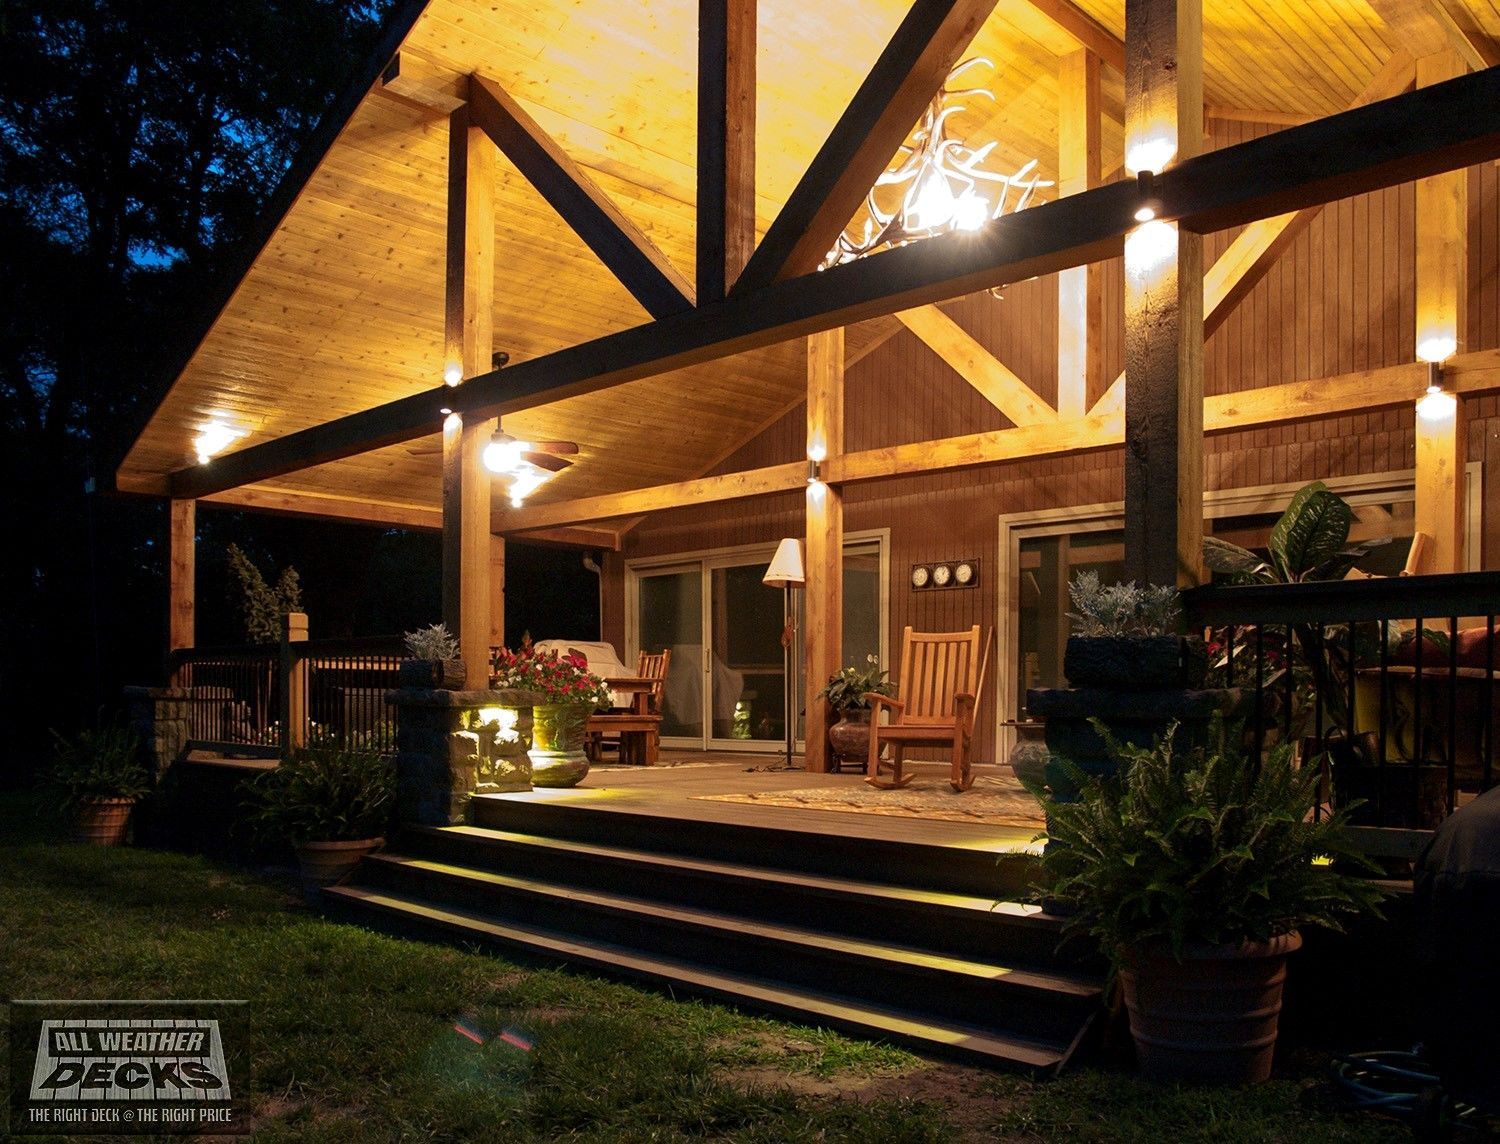 Gabled Roof Covered Deck - Picture 7675